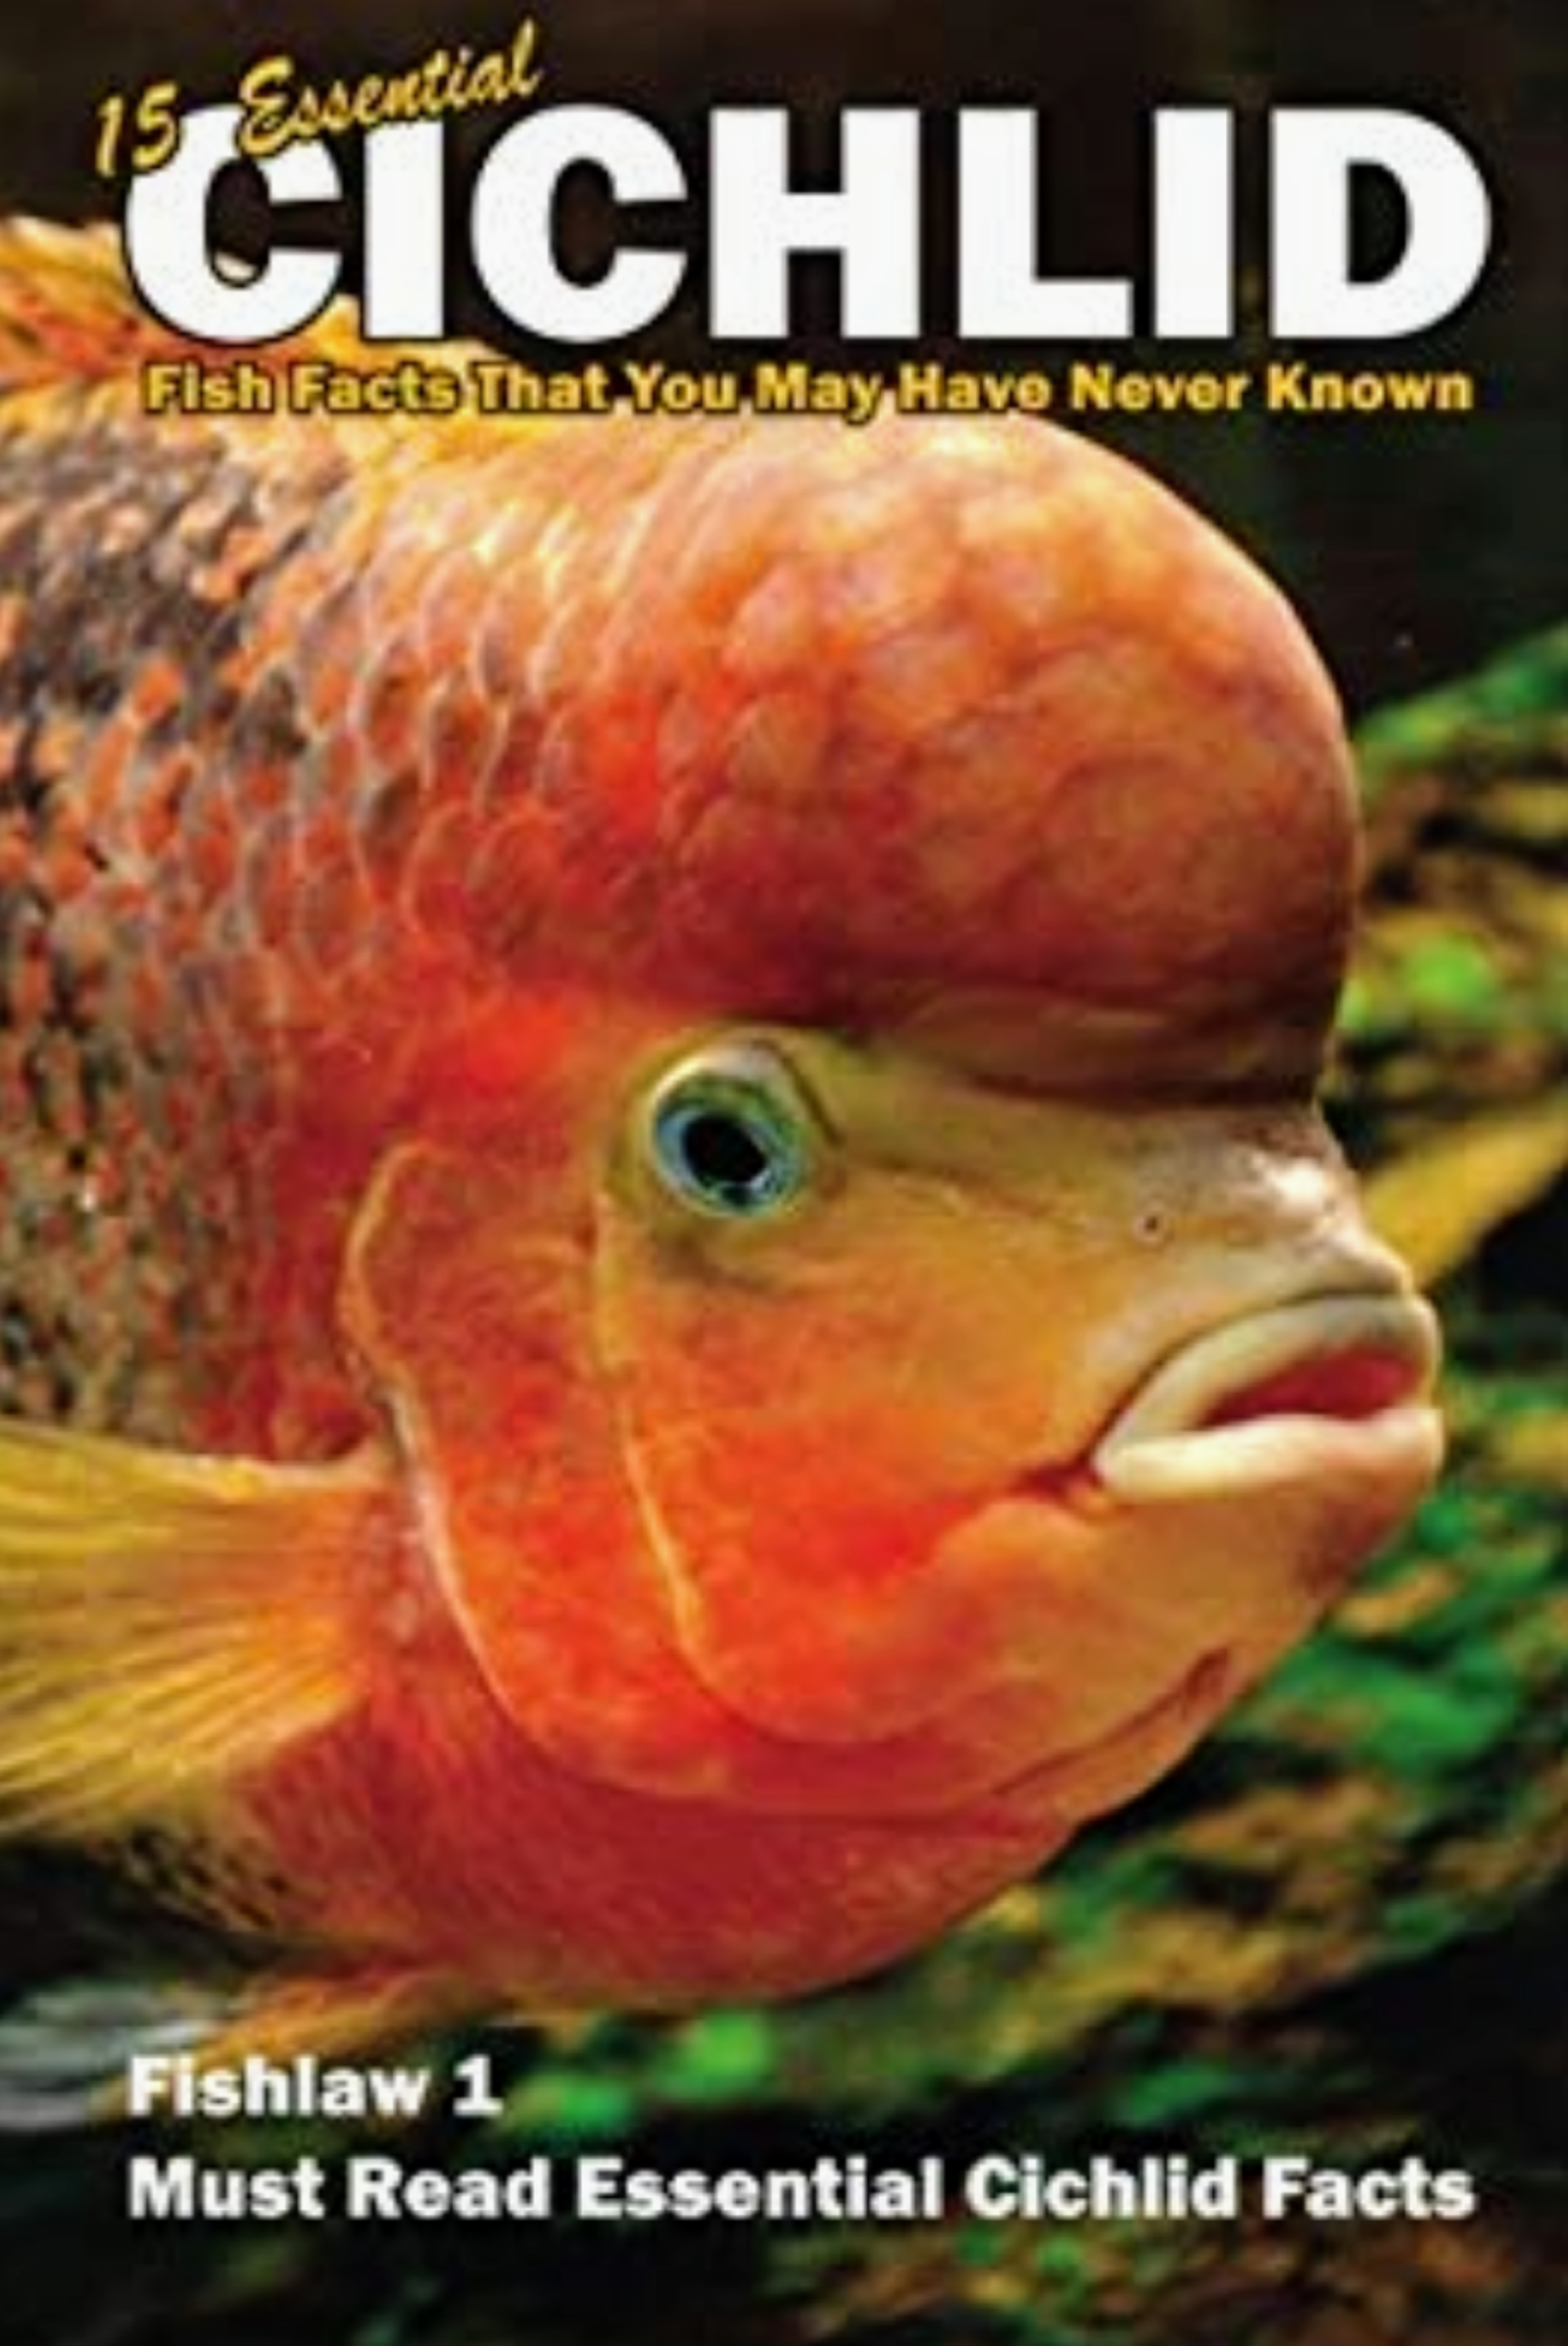 15 Essential Cichlid Fish Facts That You May Have Never Known,  Fishlaw1 Must Read Cichlid Facts | by Lawrence Smith